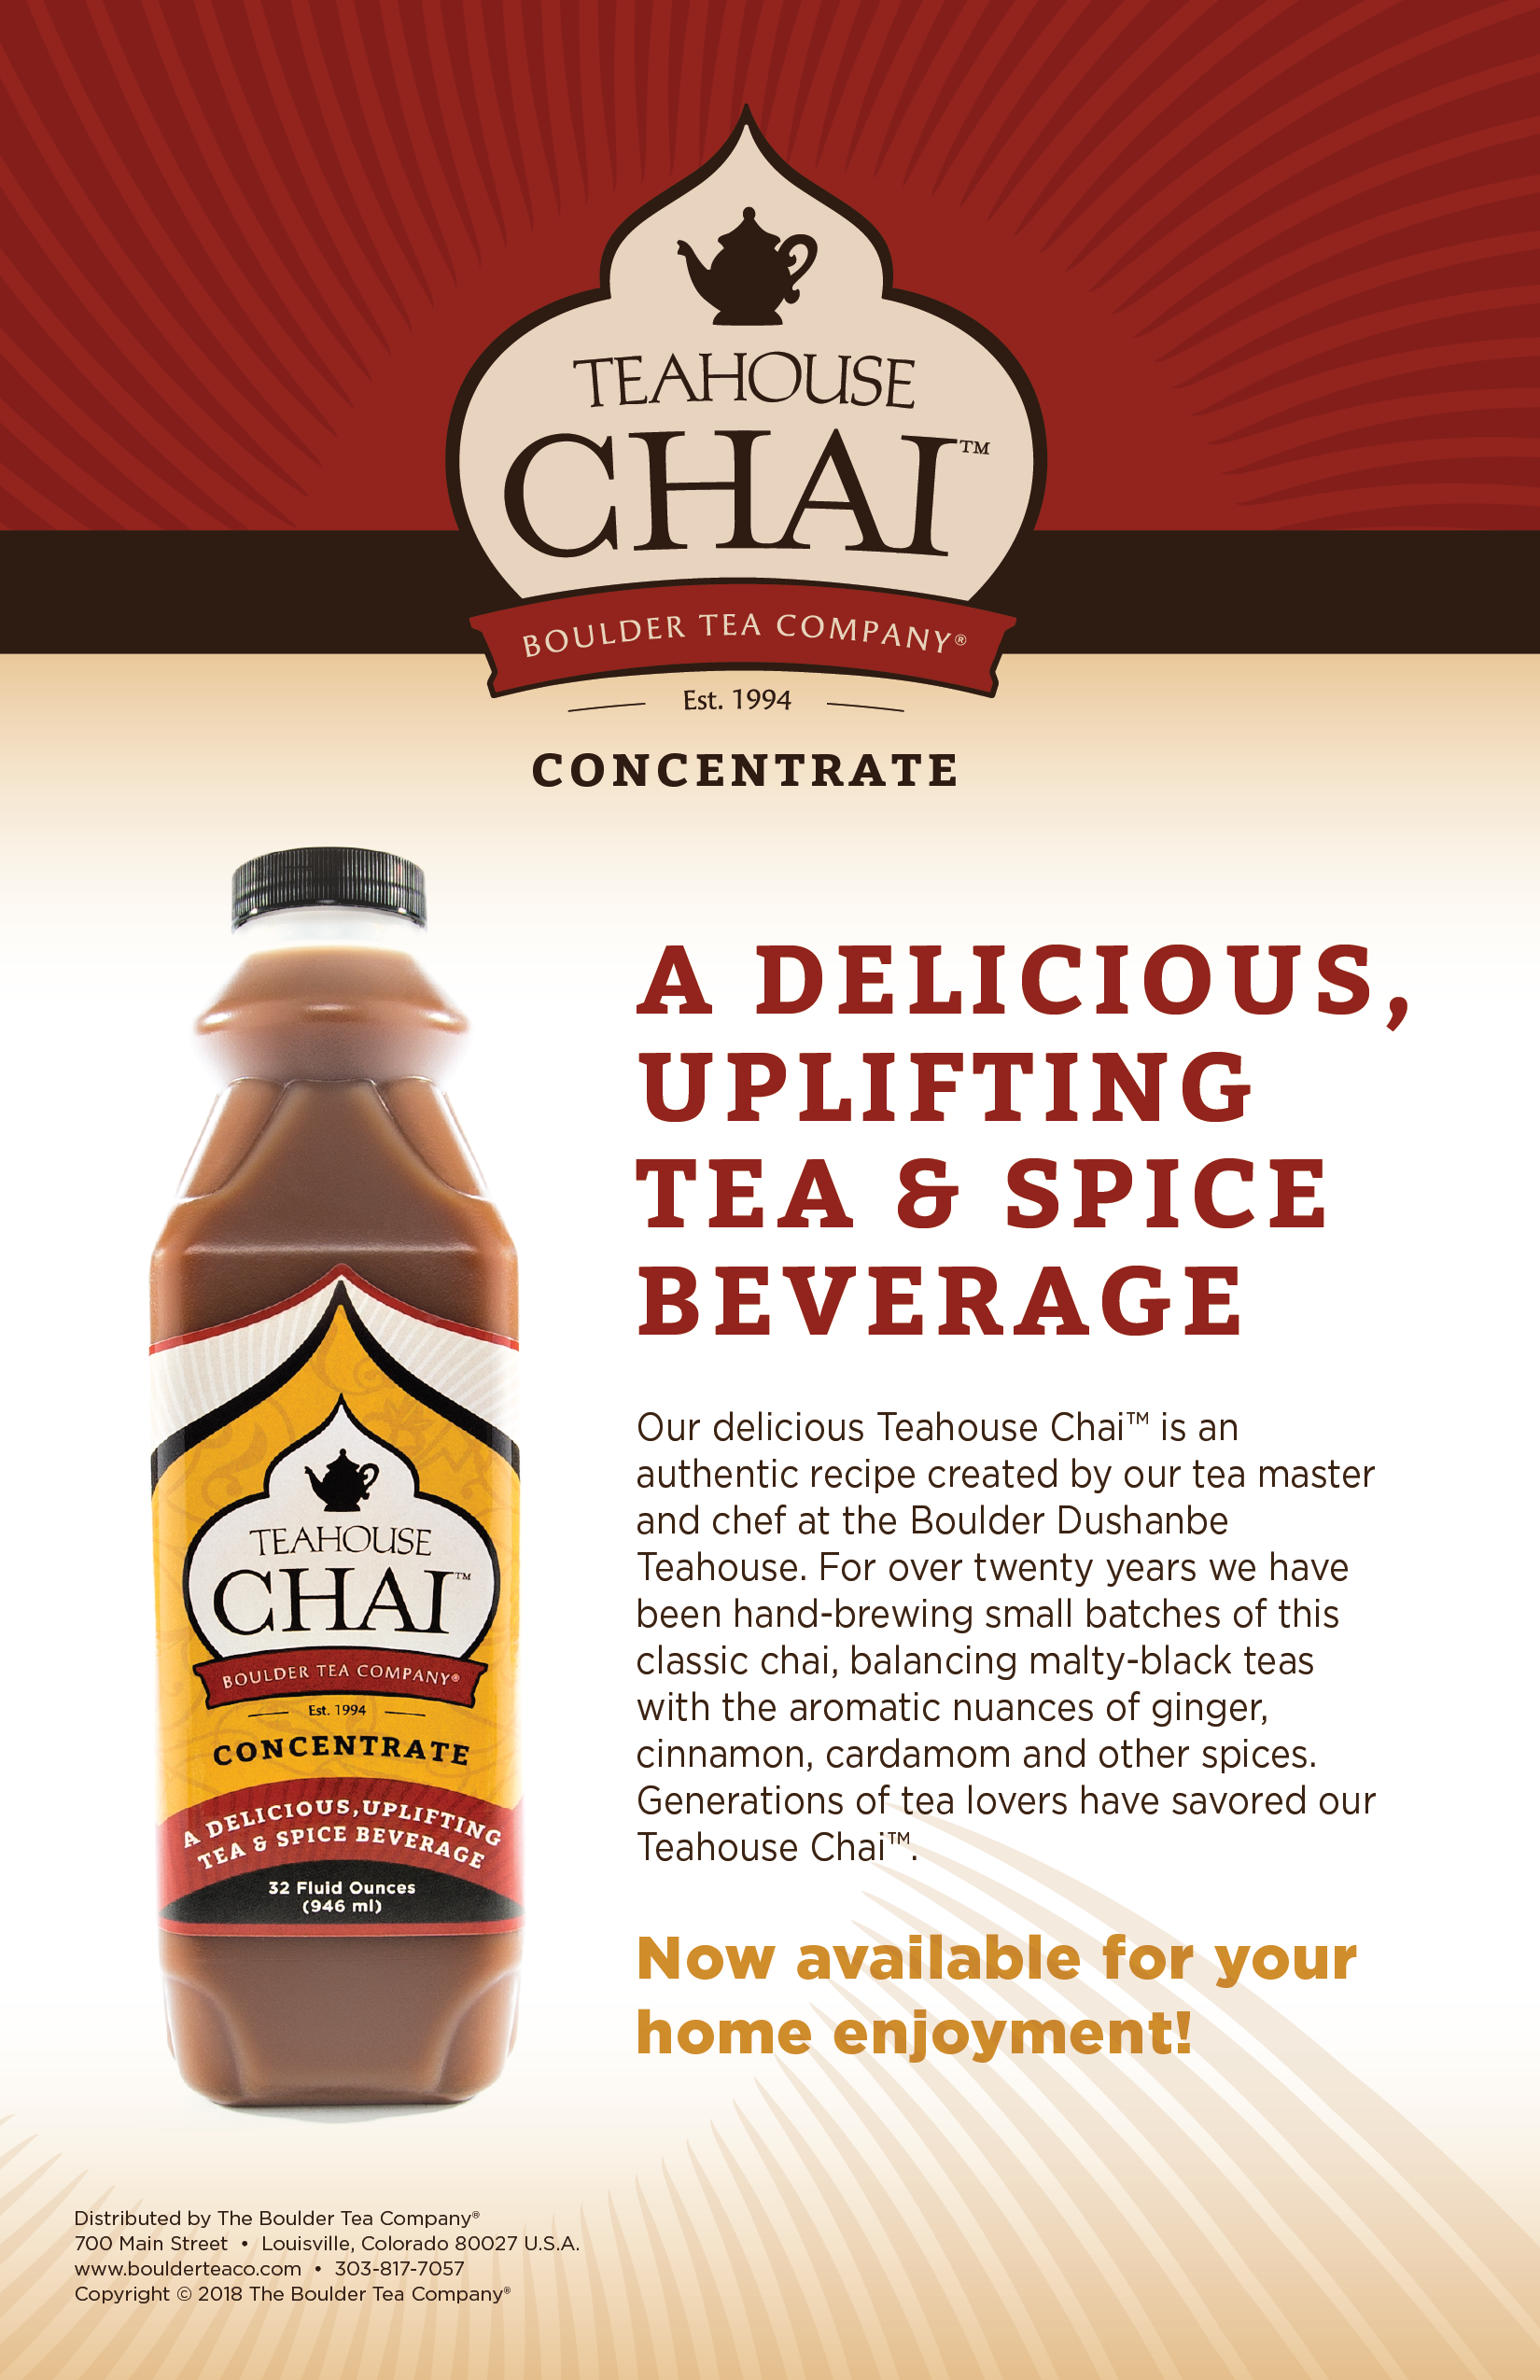 INGREDIENTS:  Black Tea (filtered water, black tea leaves), Organic Cane Sugar, Spices (whole ground), Citric Acid. Contains naturally occurring caffeine.